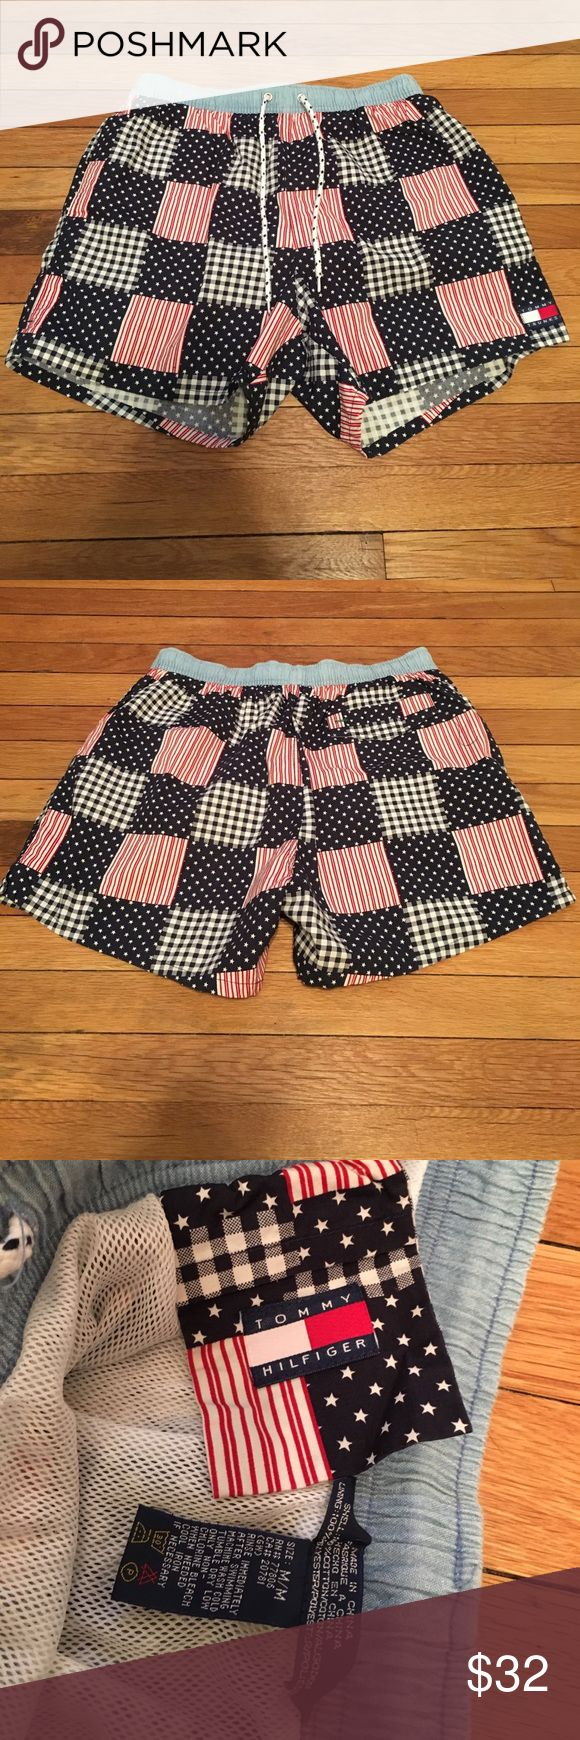 SUPER DOPE VINTAGE TOMMY HILFIGER SWIM TRUNKS Size: Medium, American-flag patterned Tommy Trunks bathing suit by Tommy Hilfiger.  Worn once and in excellent condition!  Serious offers no lowballing.  Tags: tommy hilfiger, tommy trunks, tommy jeans, vintage, retro, polo ralph lauren, nautica, 90s, supreme, bape, yeezy, nmd Tommy Hilfiger Swim Swim Trunks